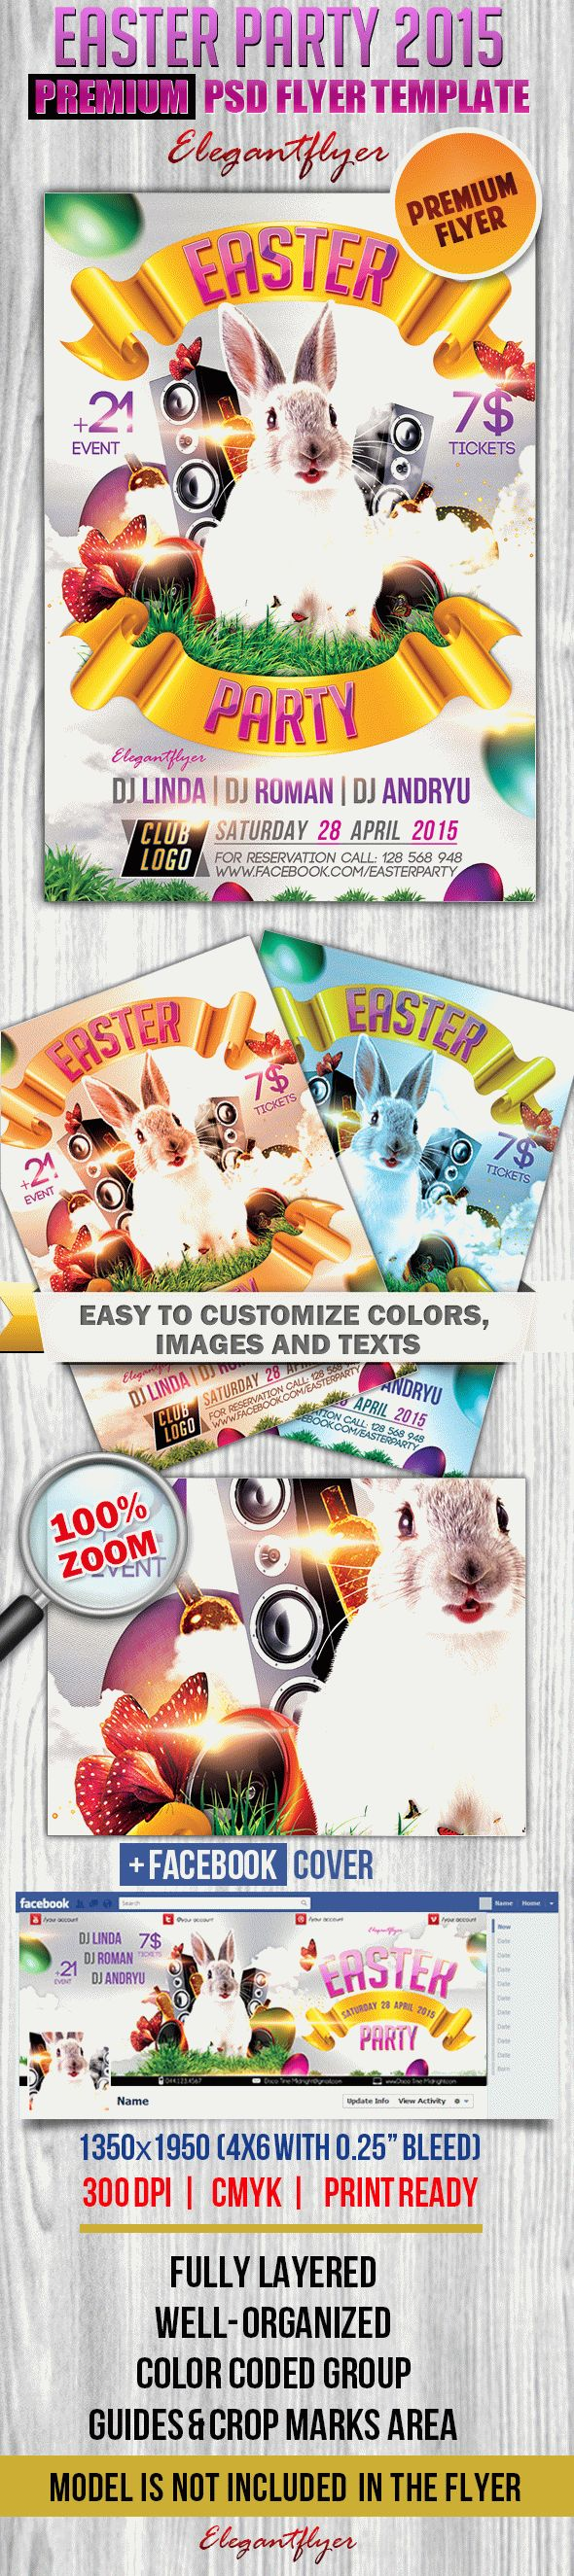 Easter party 2015 – Flyer PSD Template